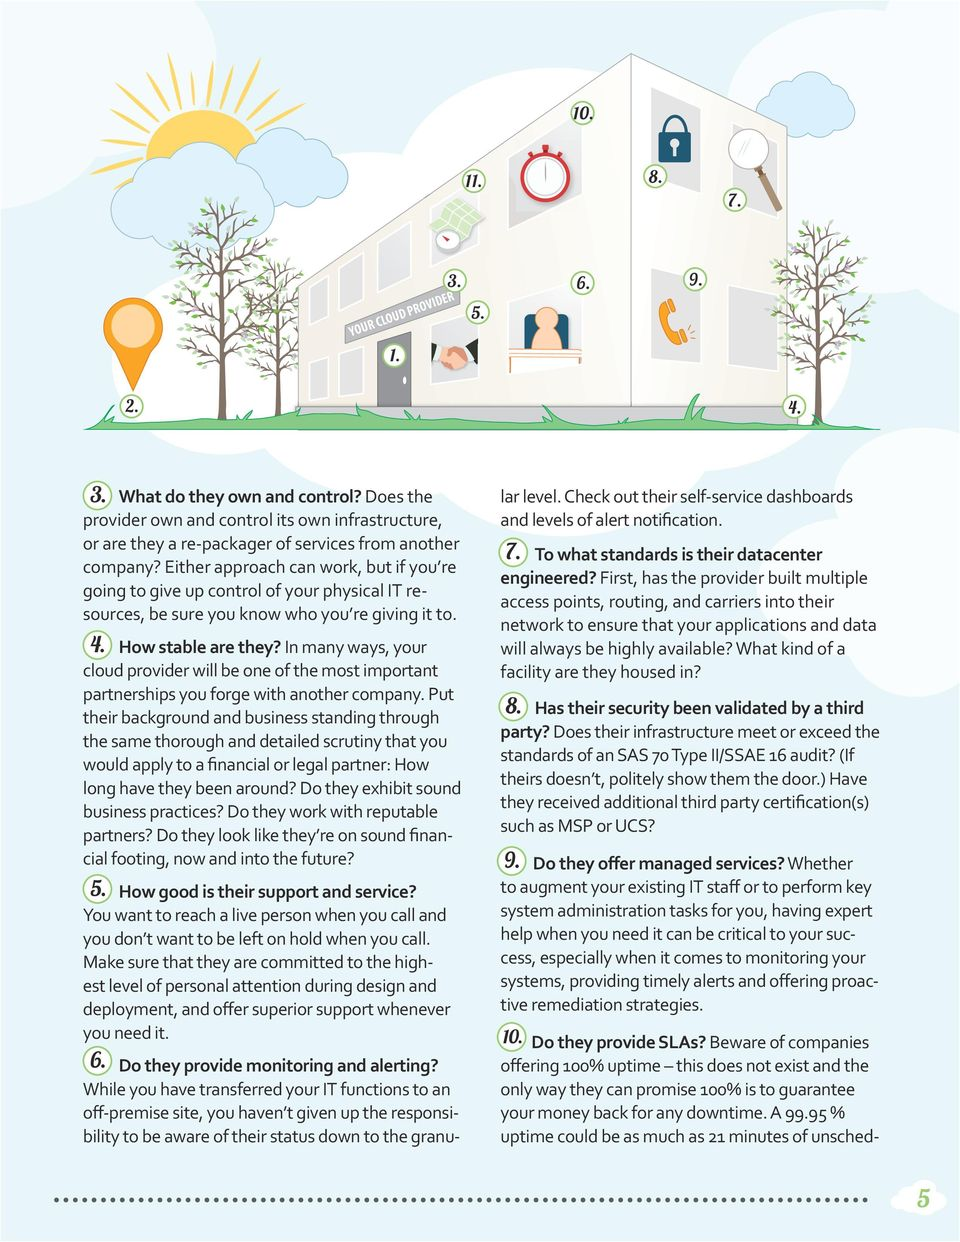 Either approach can work, but if you re going to give up control of your physical IT resources, be sure you know who you re giving it to. 4. How stable are they?